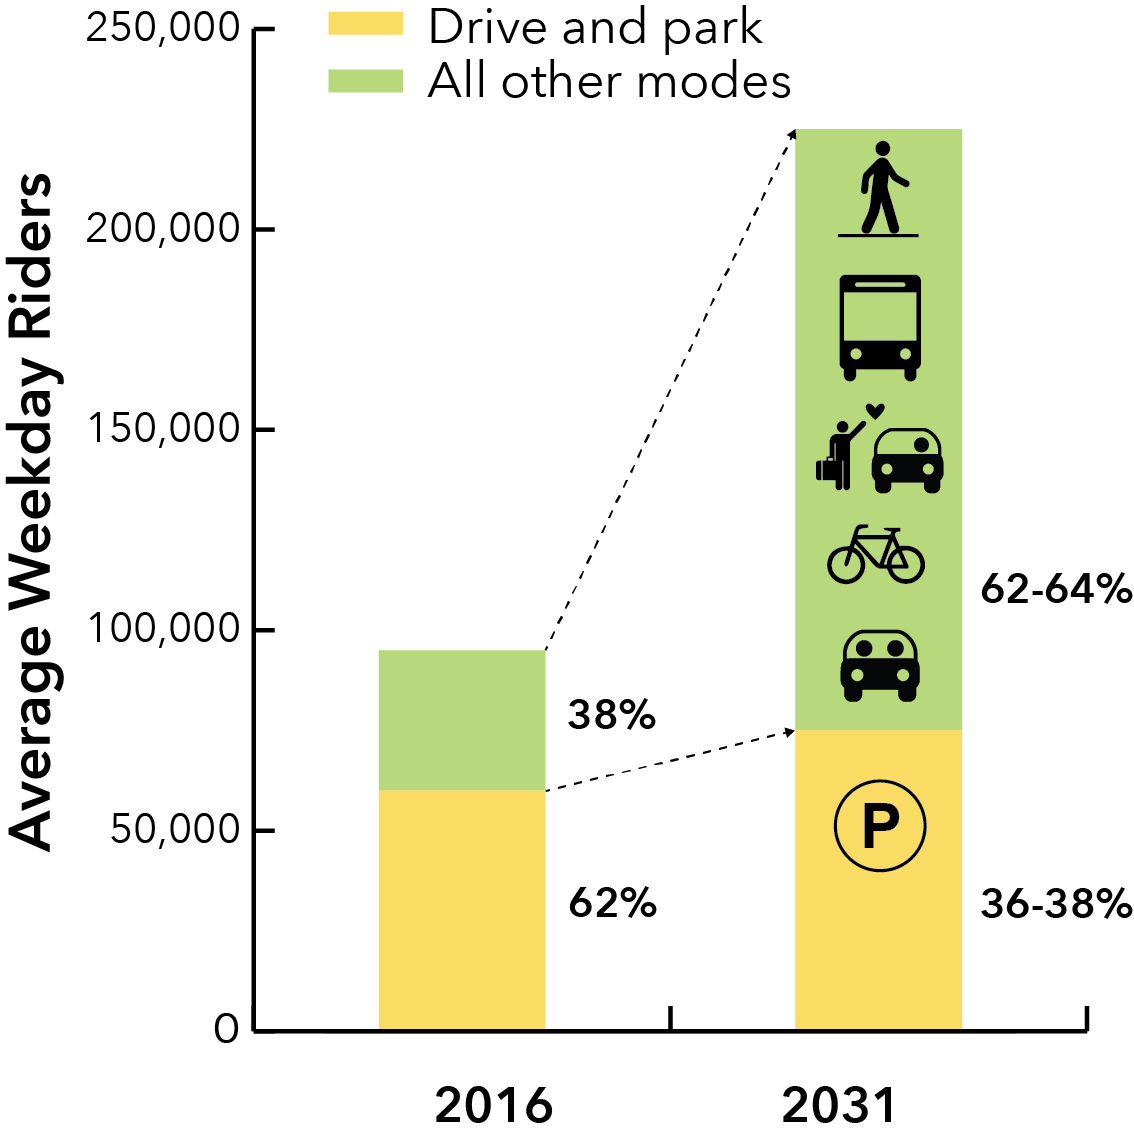 Graphic showing ease of station access